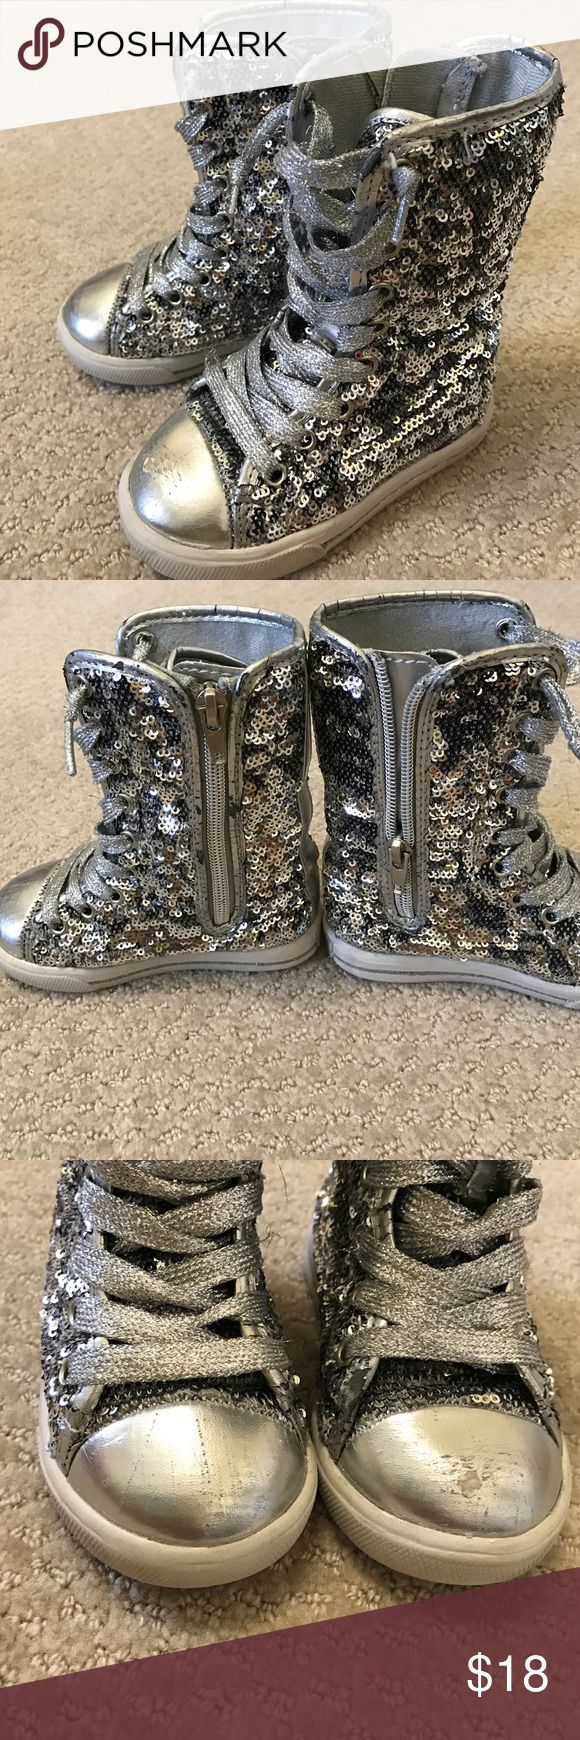 Glittery Toddler High-Top Boots Very cute toddler sequin high top boots. Side zipper for easy on and off. Scuff marks on the front (please refer to pictures). Your princess will look fabulous in these!! *no trades, no holds, no modeling*. Shoes